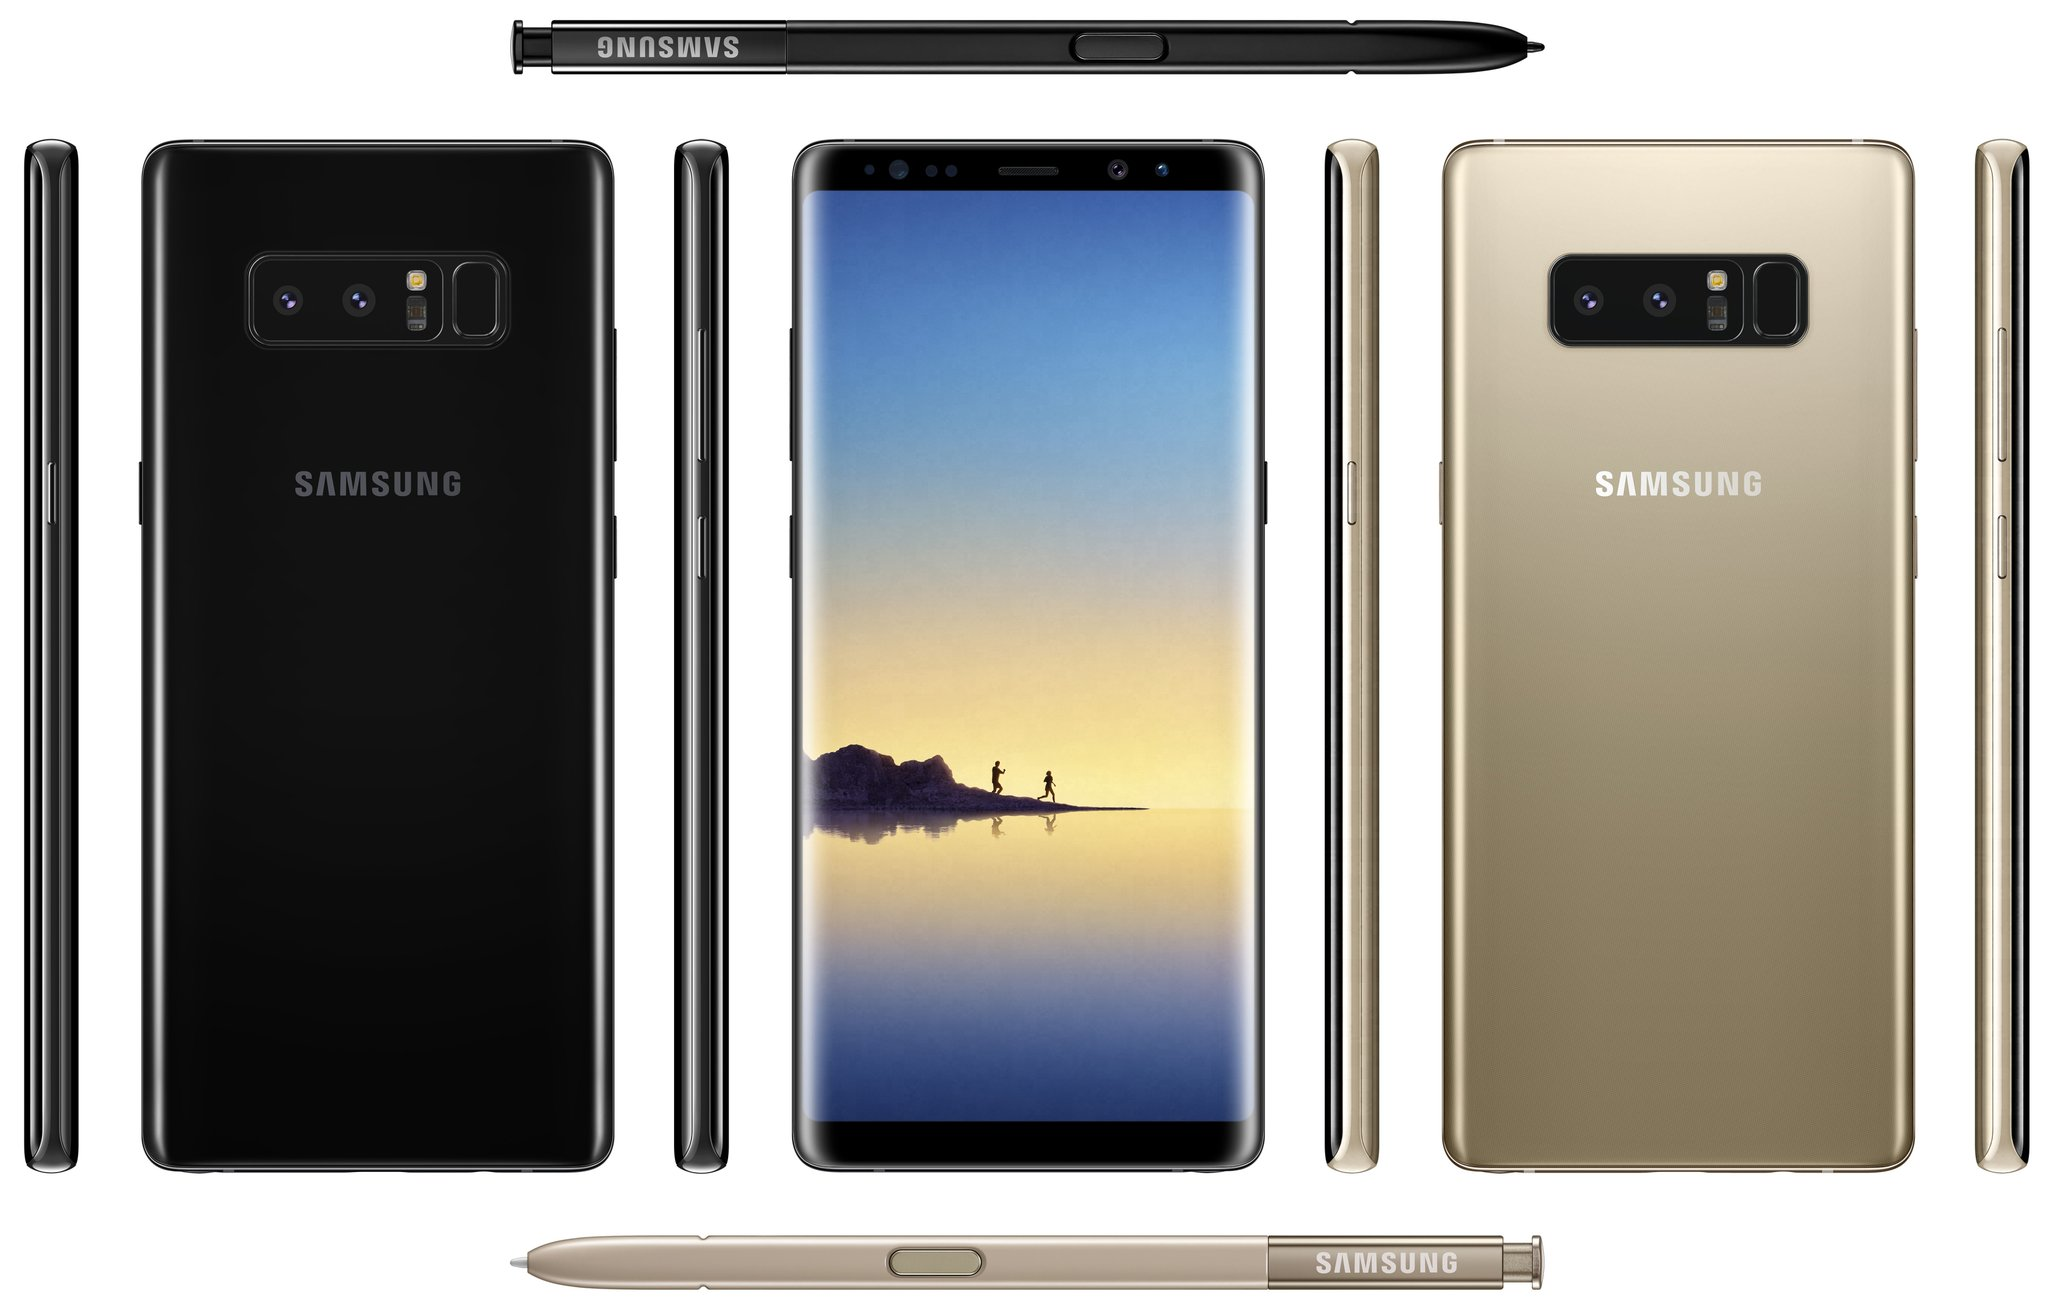 Samsung Galaxy Note 8 1 New Samsung Note 8 Is Going To Make Life Complicated For Apple